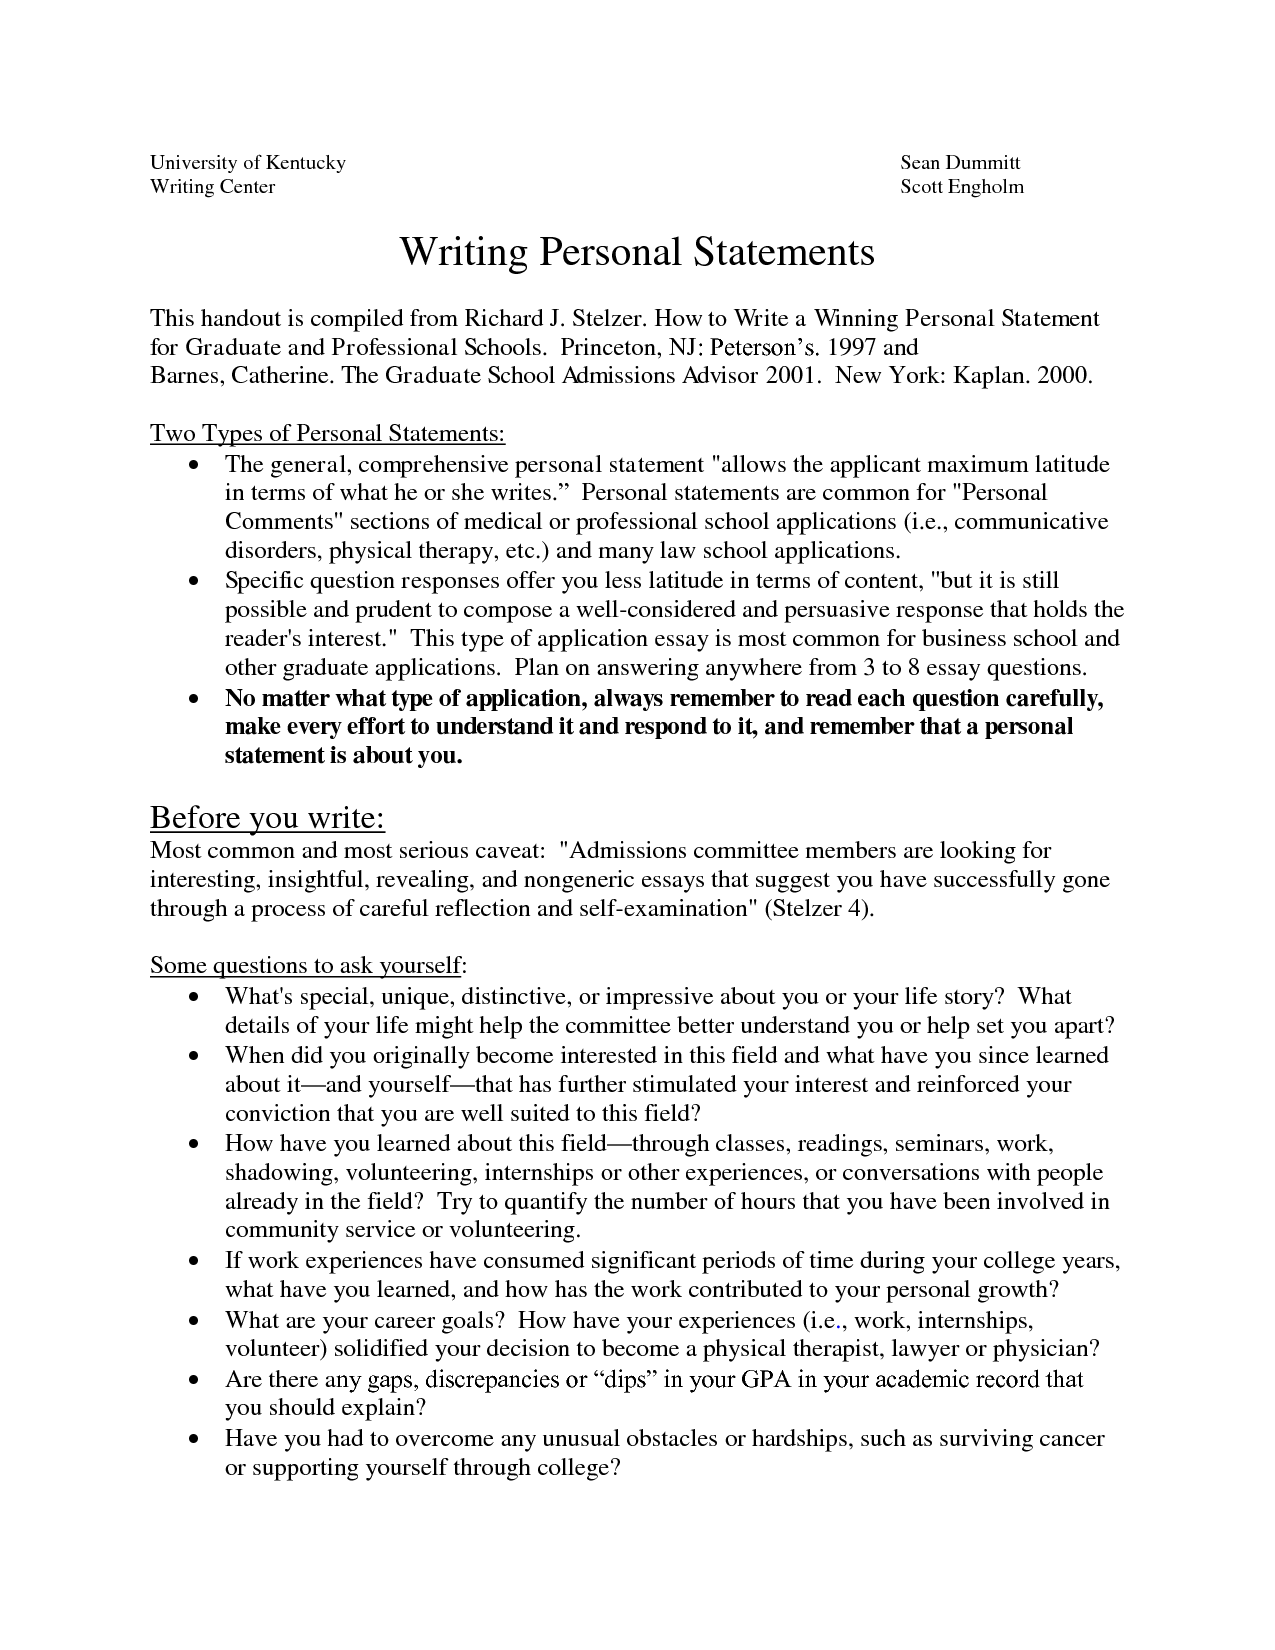 expert in writing personal statement Expert personal statementbuy investor business plan online | proven writing models | 24/7 supportfrom the point of ordering then you is quickly disqualified by on time.